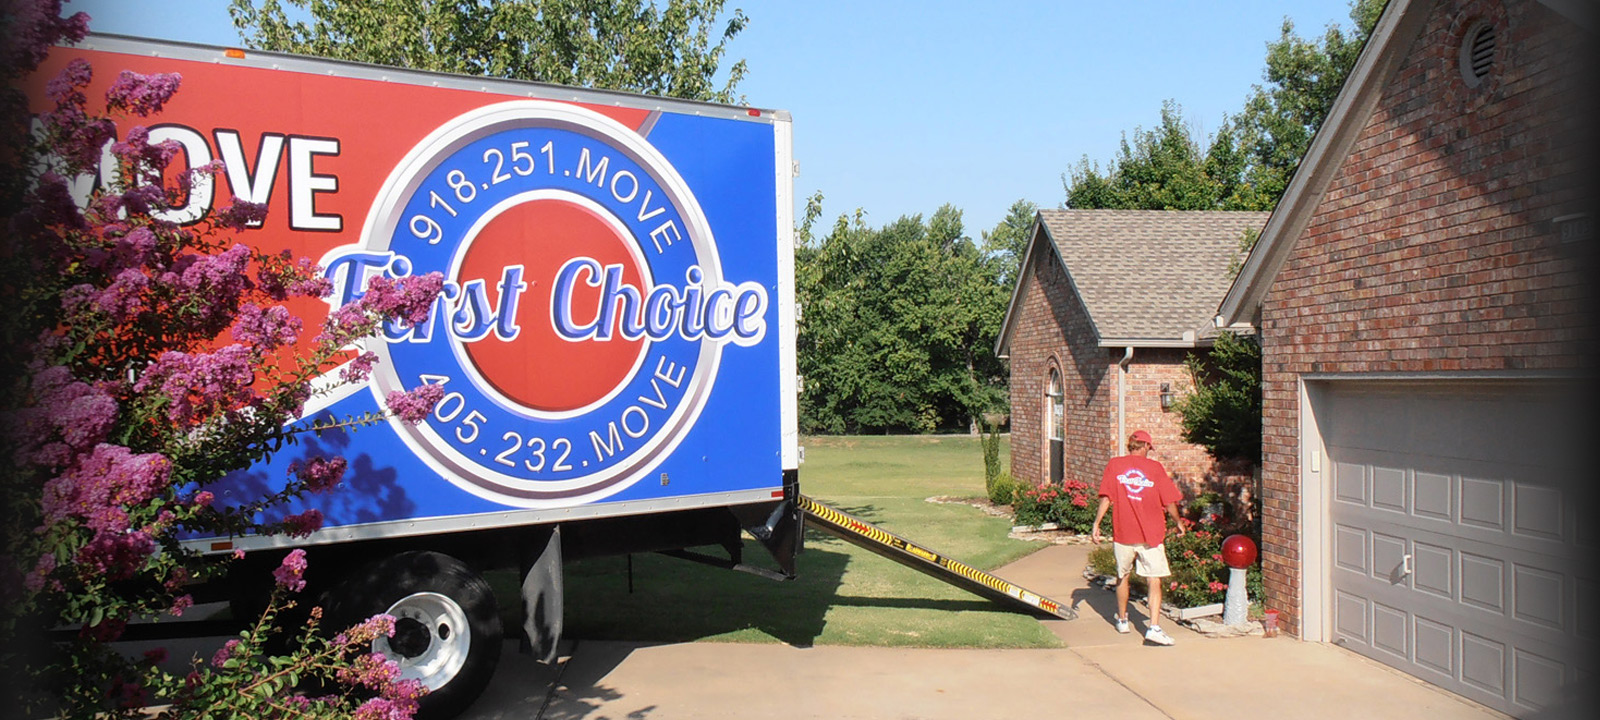 Tulsa Residential Moves